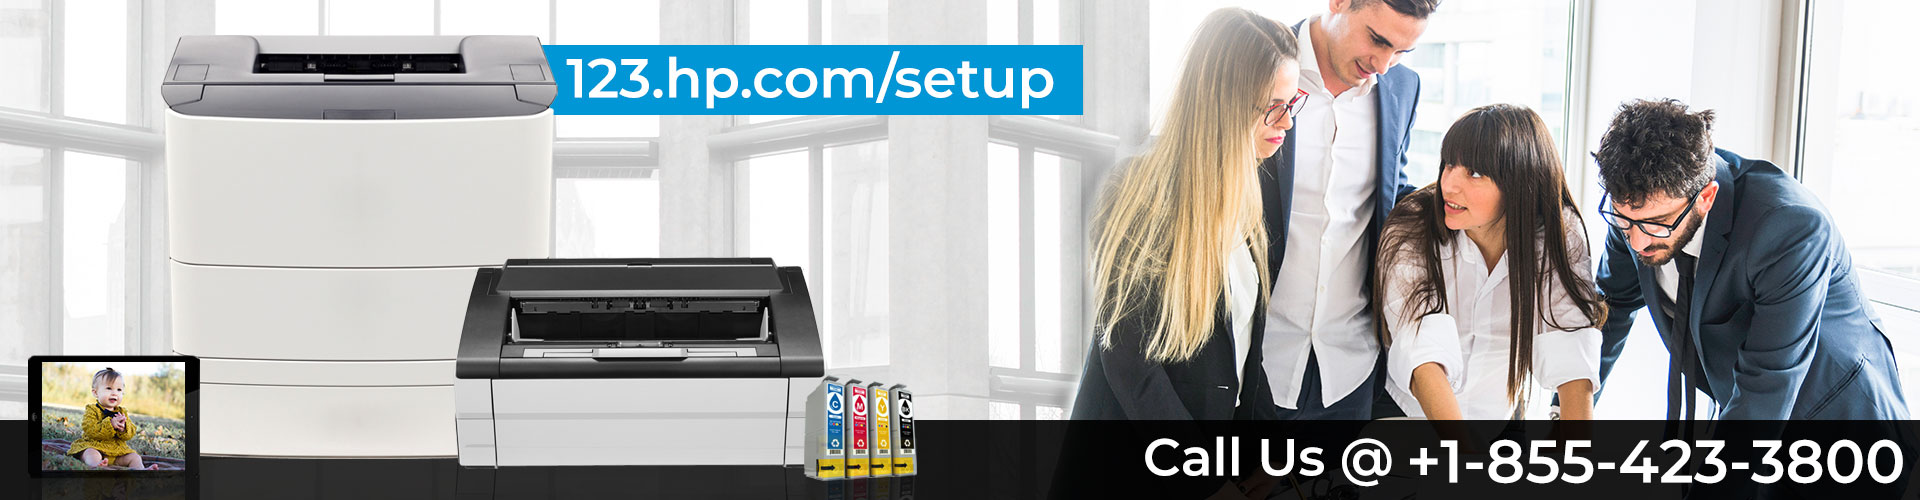 How to Download and setup HP printer Driver for Mac/Windows?